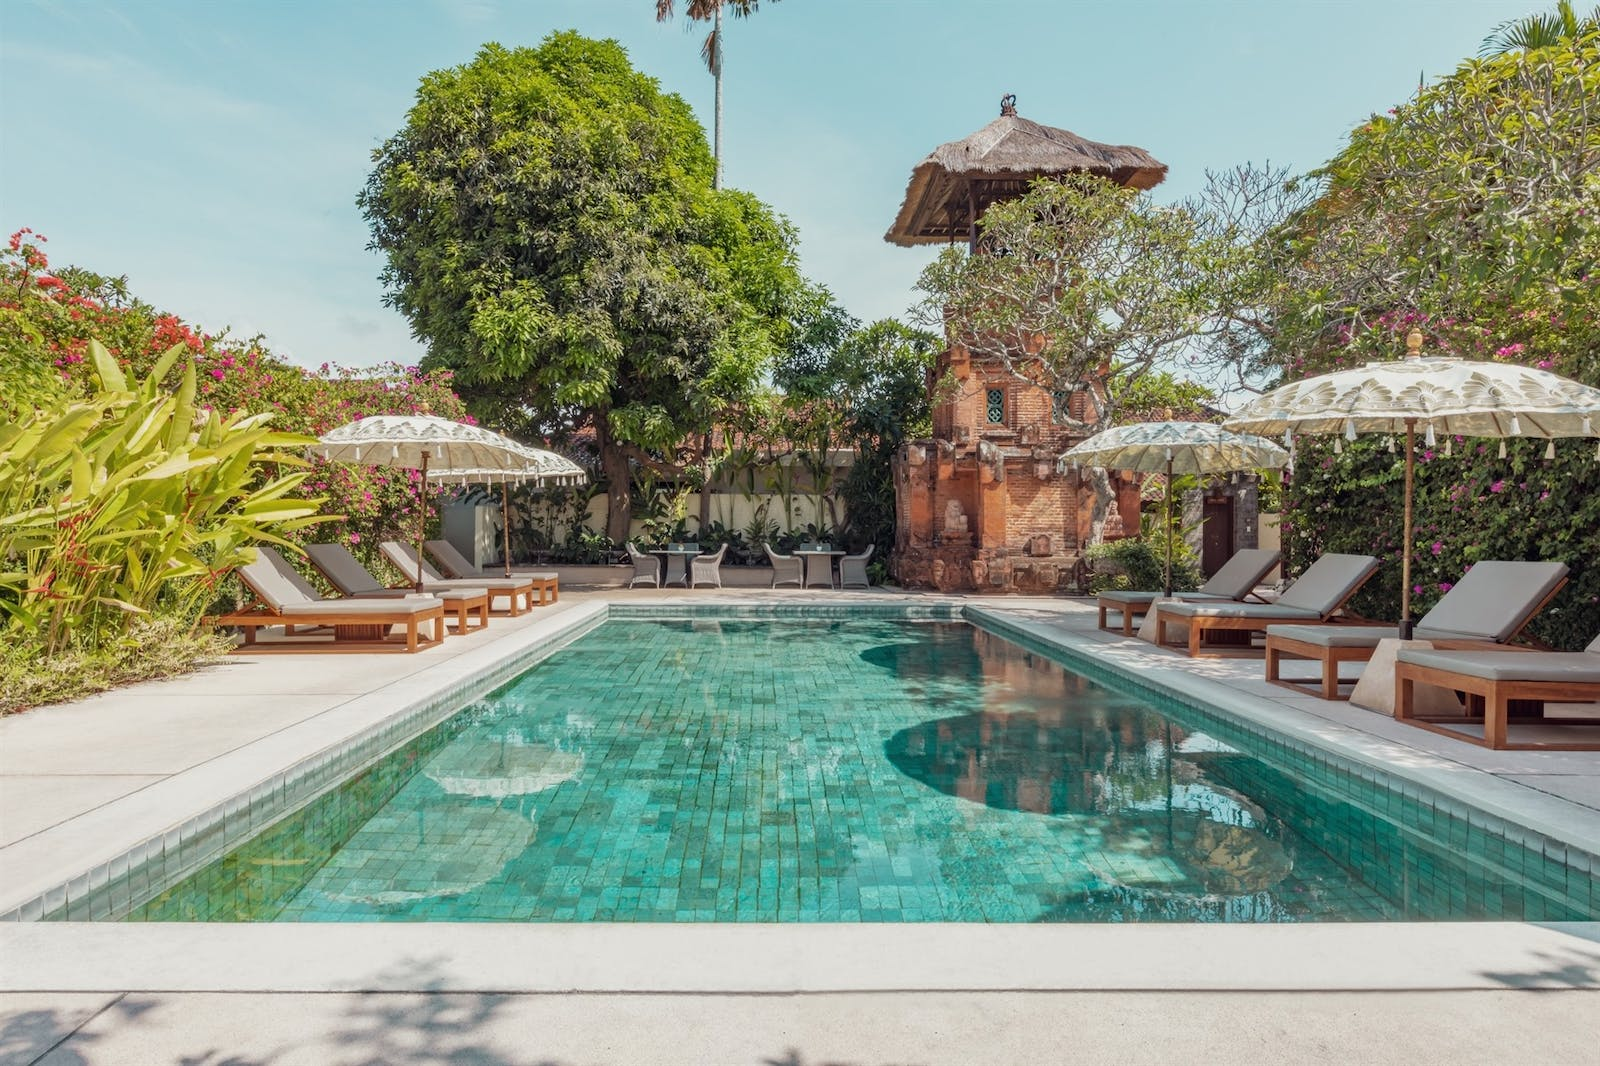 Main swimming pool, The Pavilions, Bali